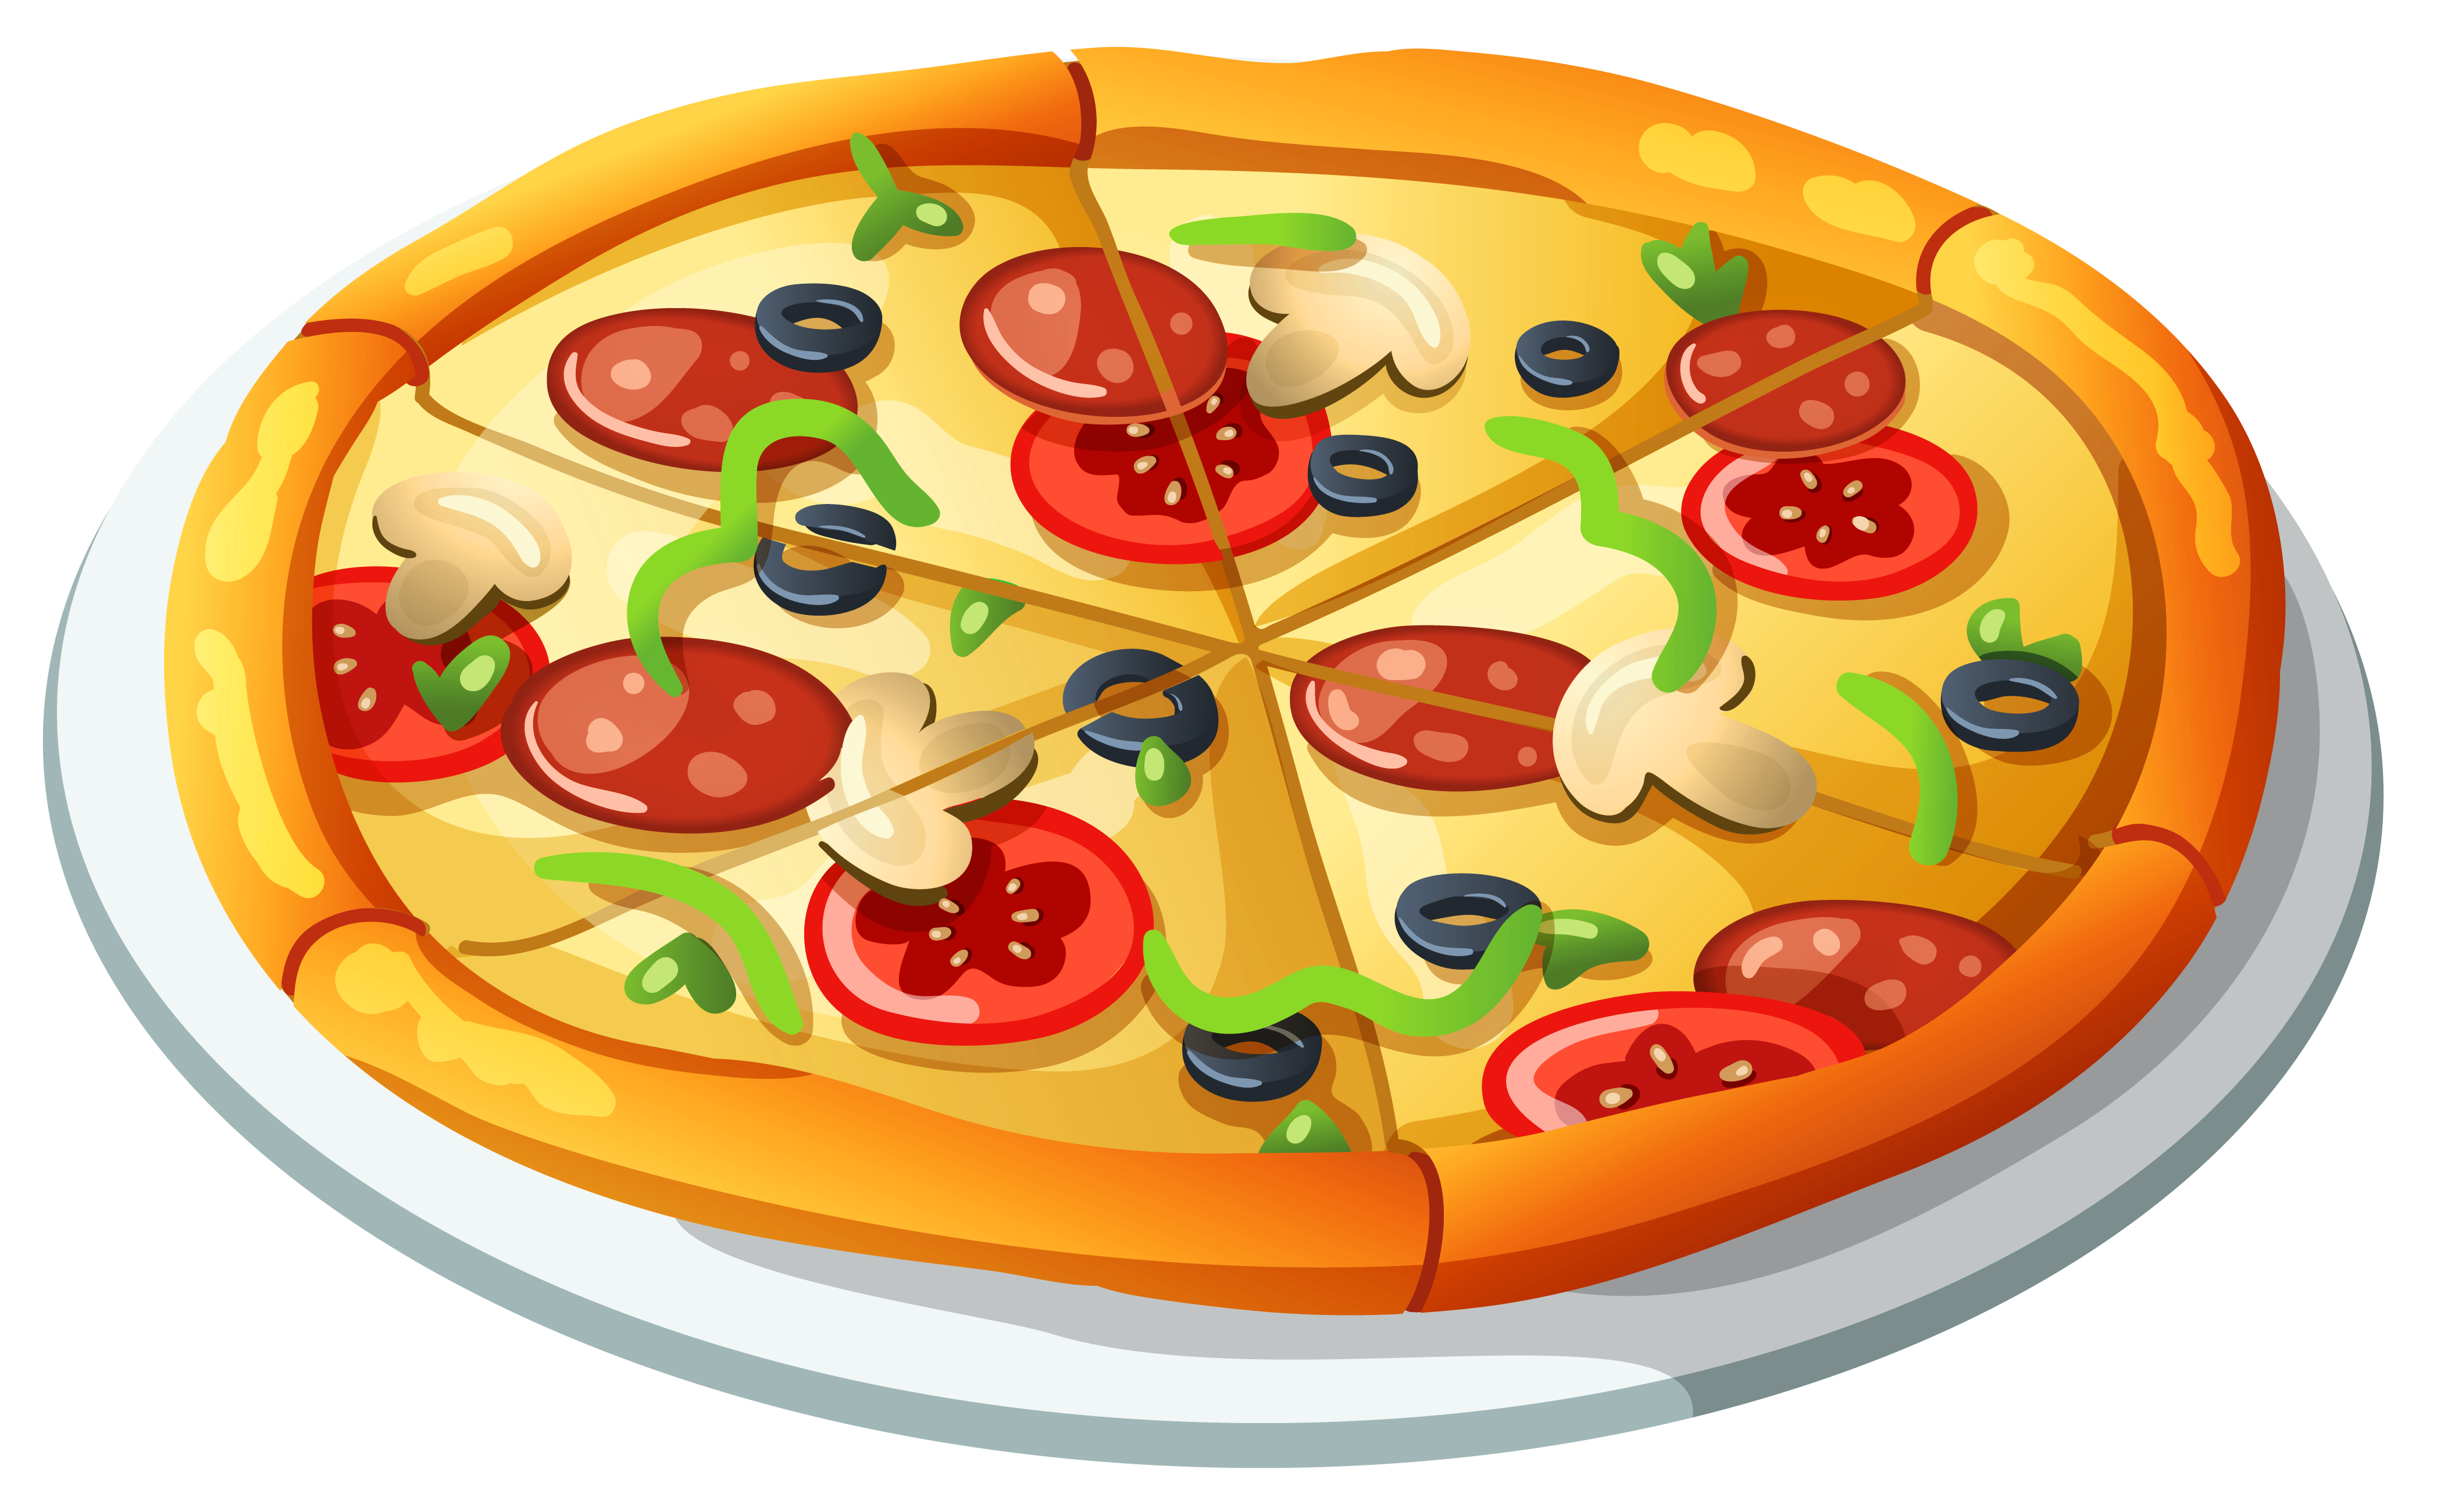 Pizza free to use cliparts 2-Pizza free to use cliparts 2-2